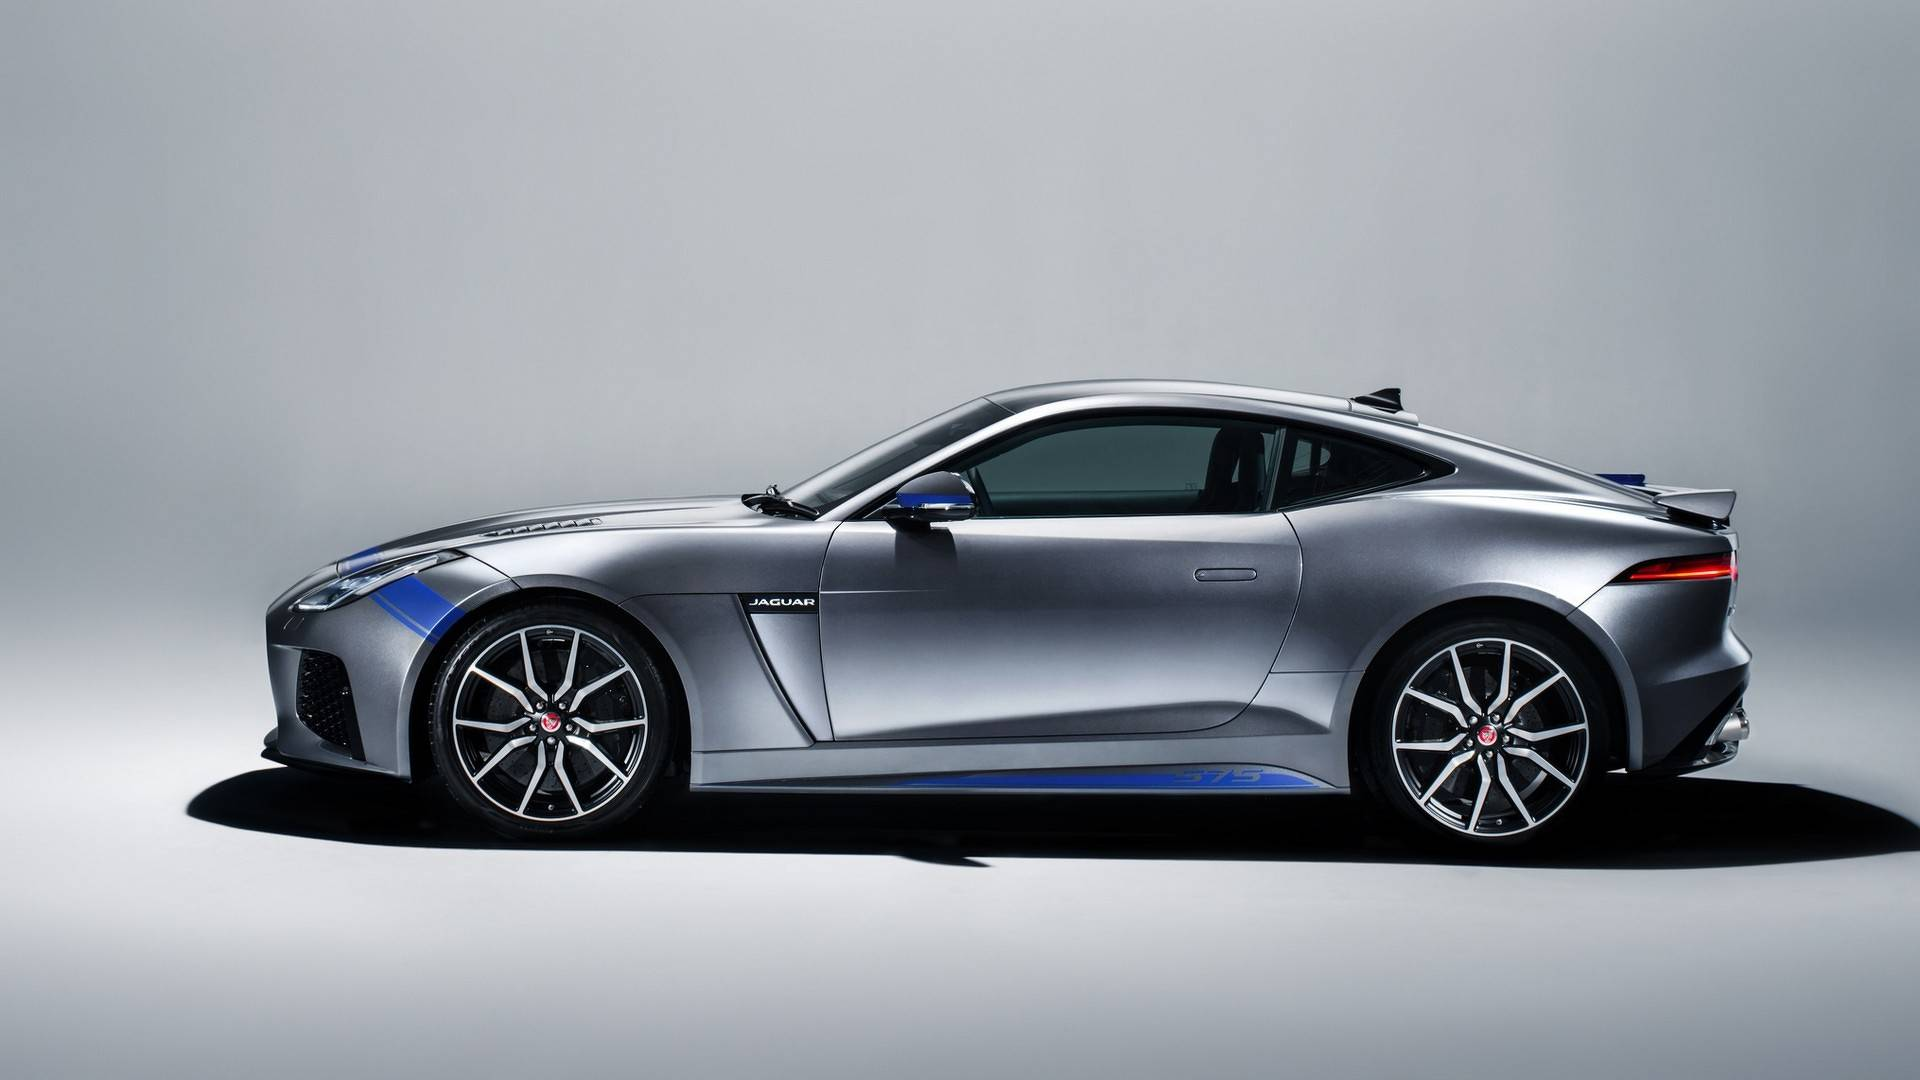 2020 jaguar f-type coming with seating for four  bmw twin-turbo v8 engine